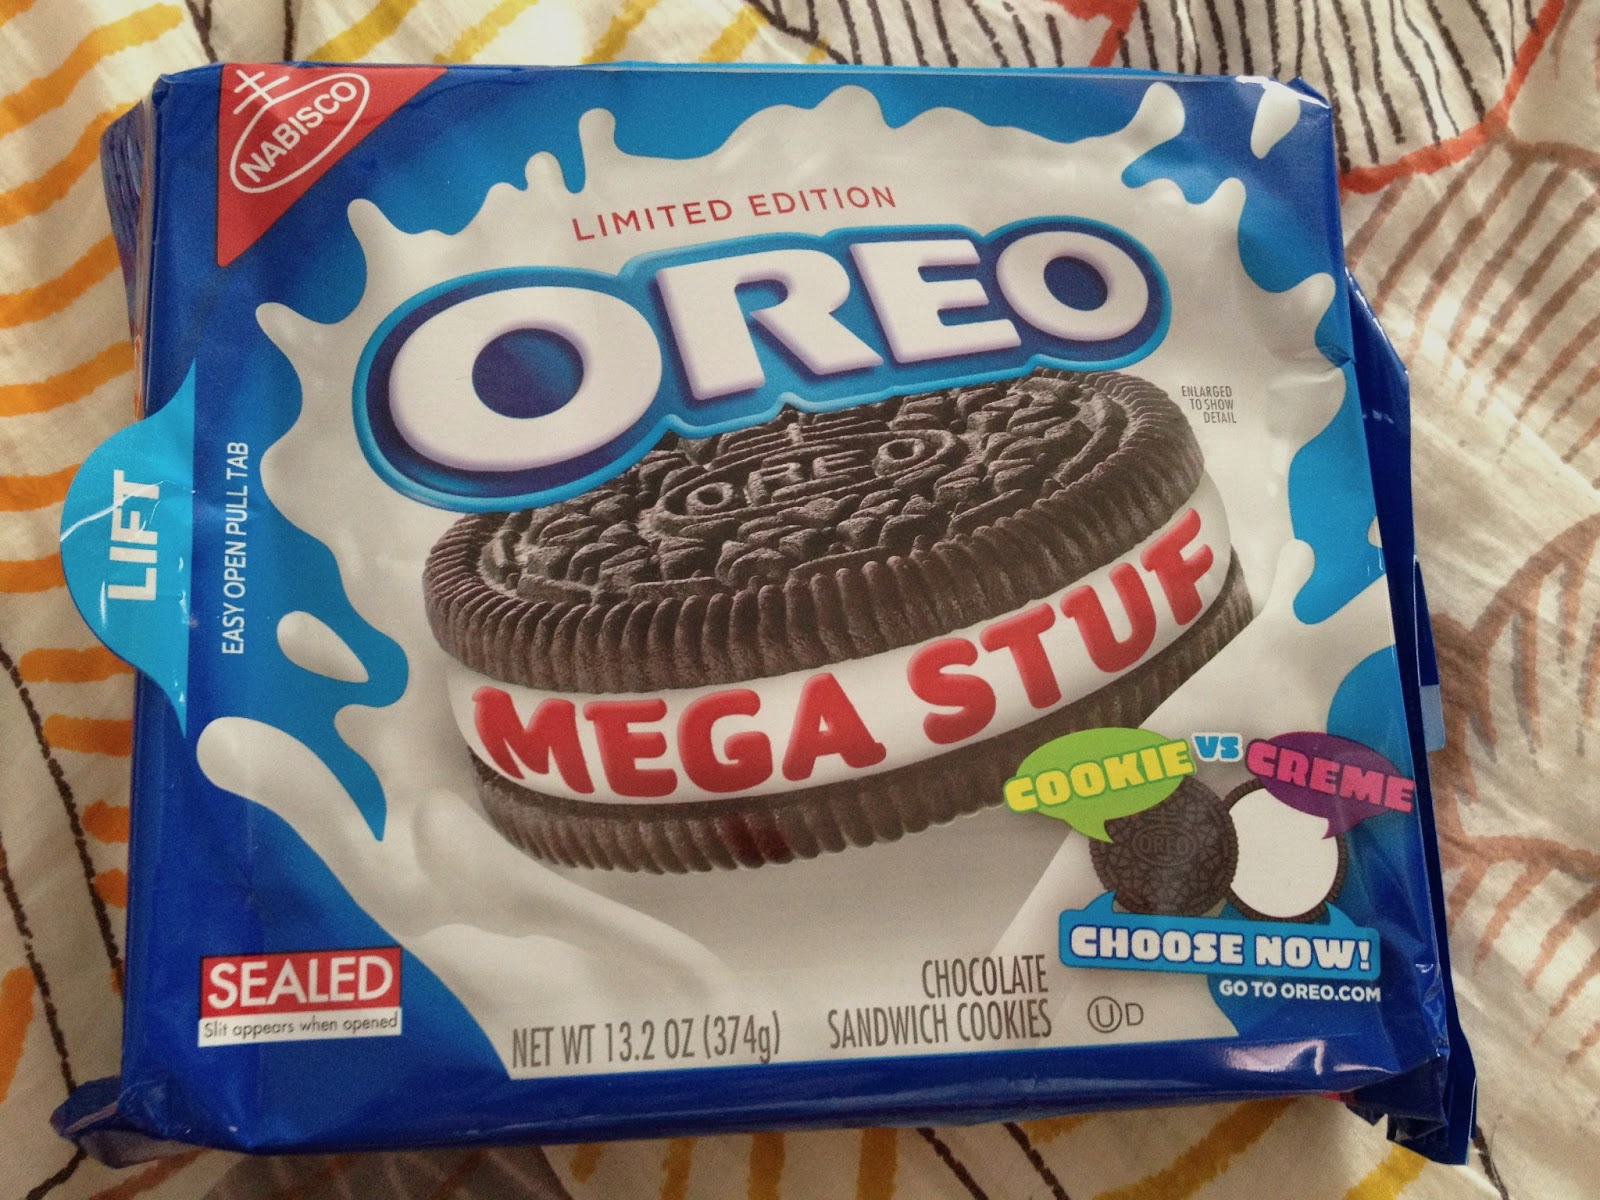 food blog, food review, oreo review, double stuf oreo, food blogger, fashion blog, fashion blogger, style blog, style blogger, mens fashion, mens fashion blog, mens style, mens style blog, womens style blog, anthropologie ootd blog, anthropologie ootd, anthropologie, ootd, mens ootd, womens ootd,